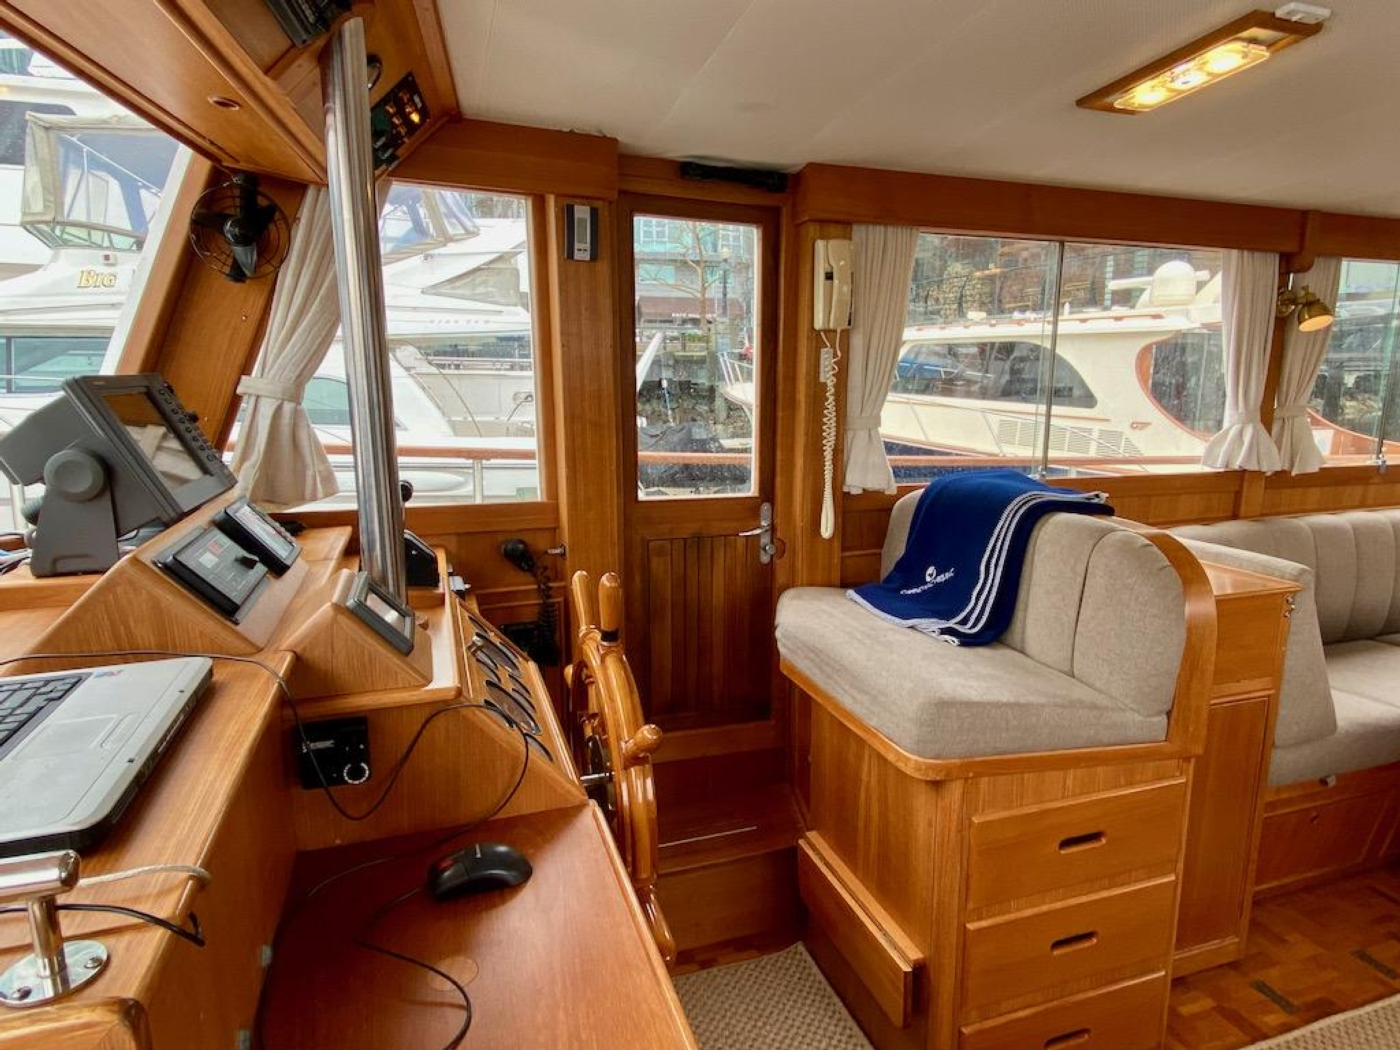 1998 Grand Banks 42 Classic, Lower helm 5